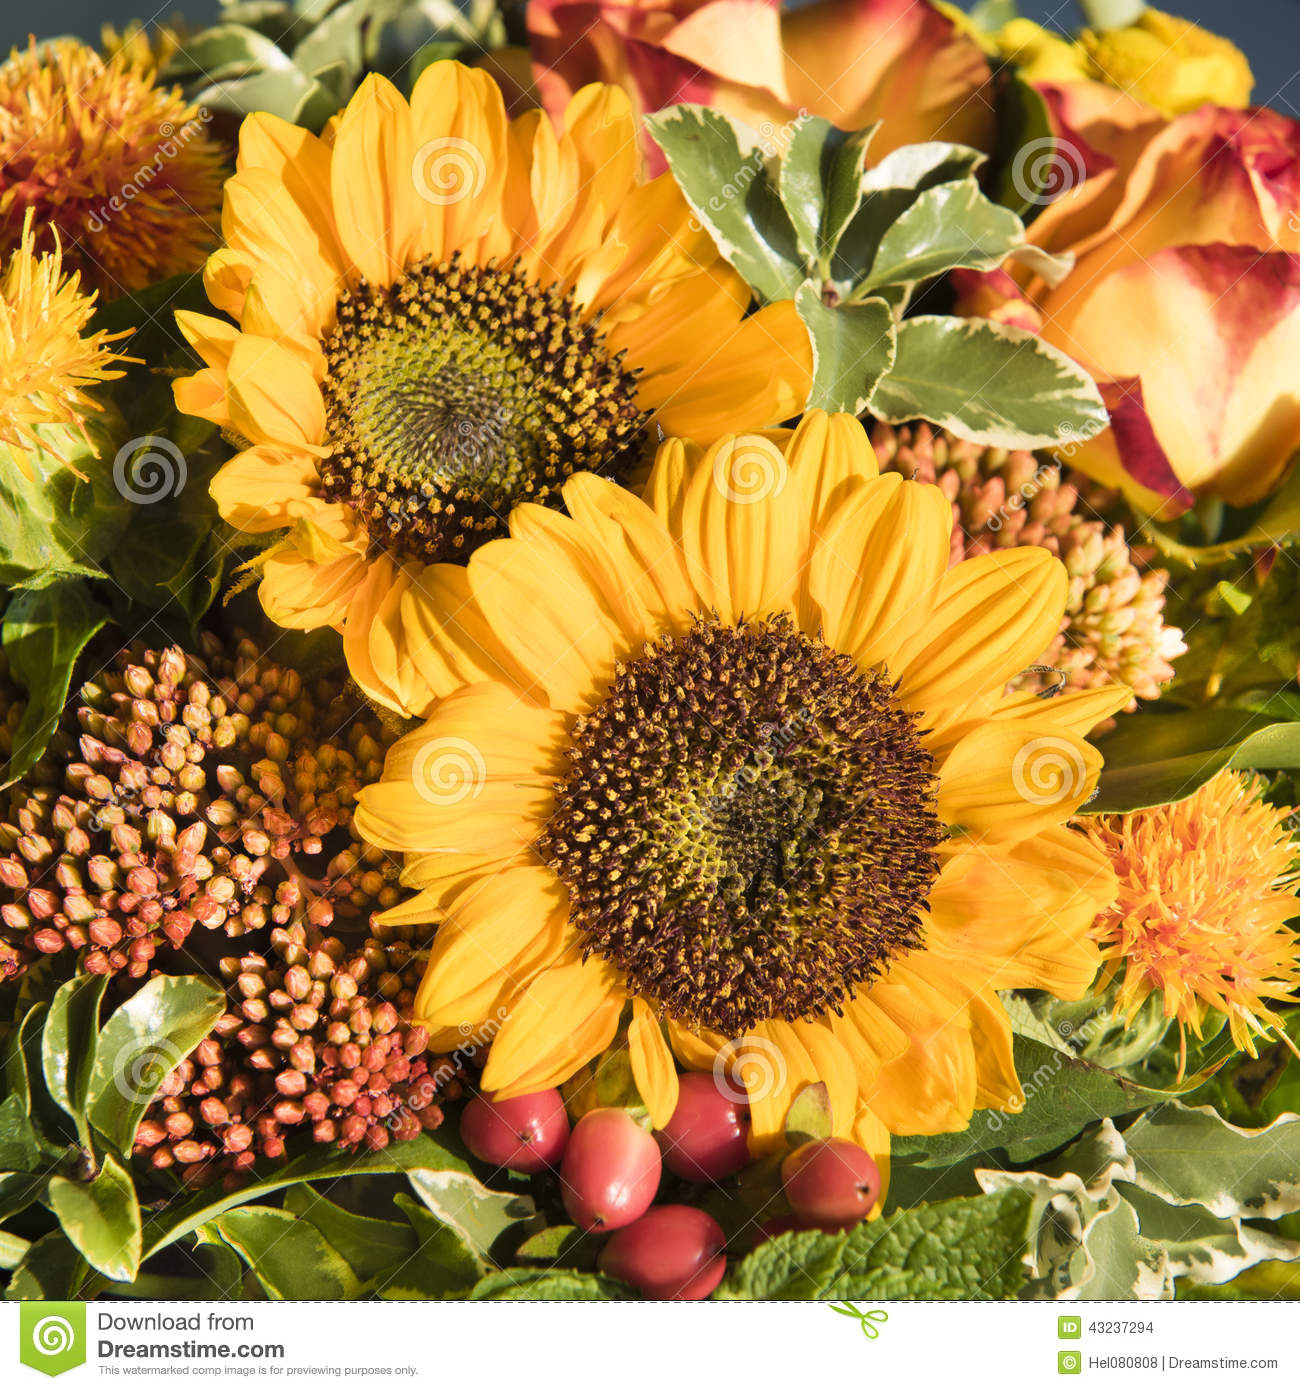 Late Fall Wallpaper Sunflowers And Fall Flowers Stock Photo Image 43237294